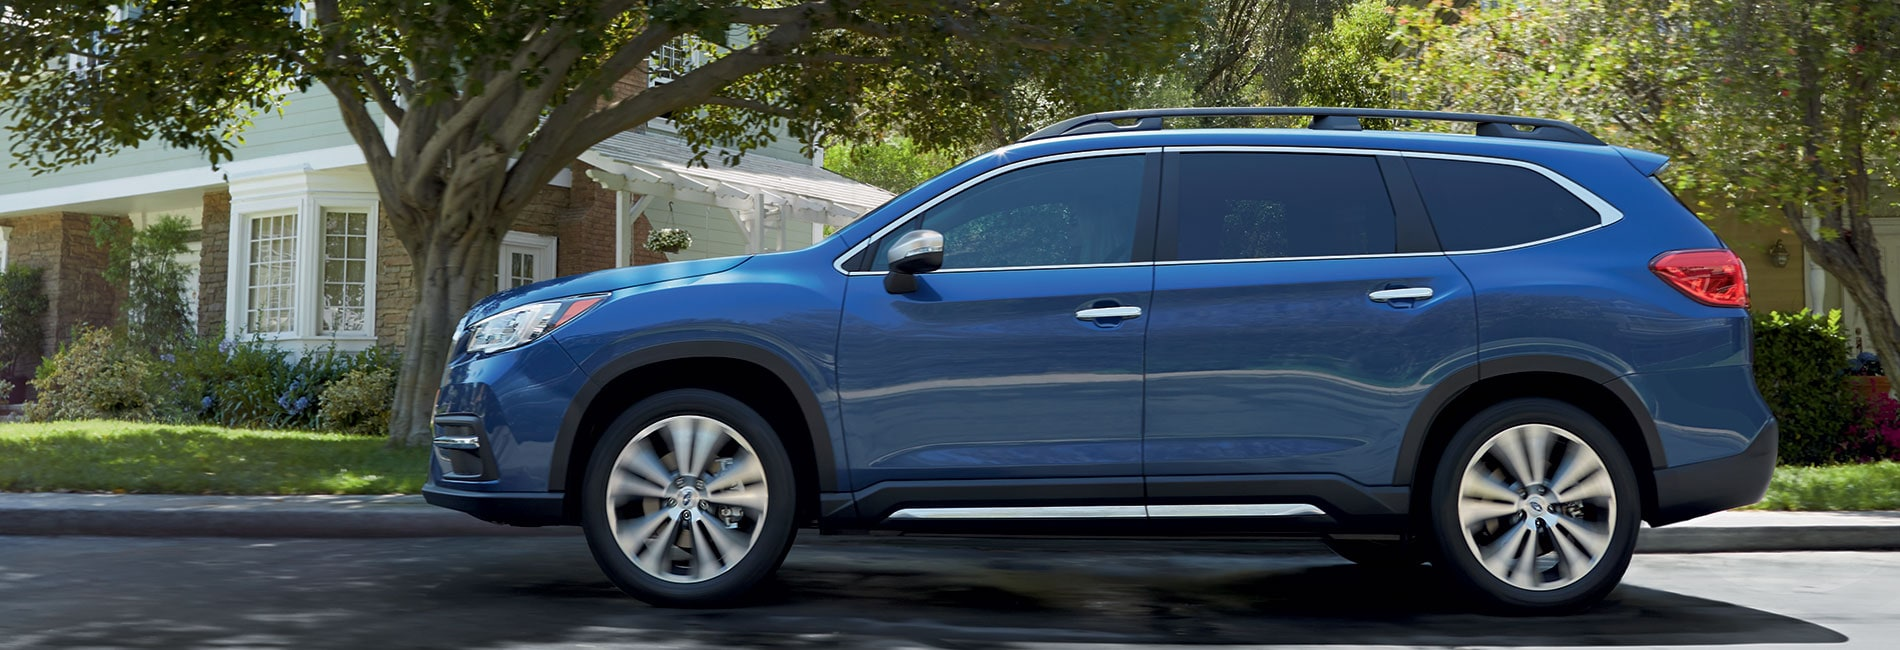 2019 Subaru Ascent Exterior Features